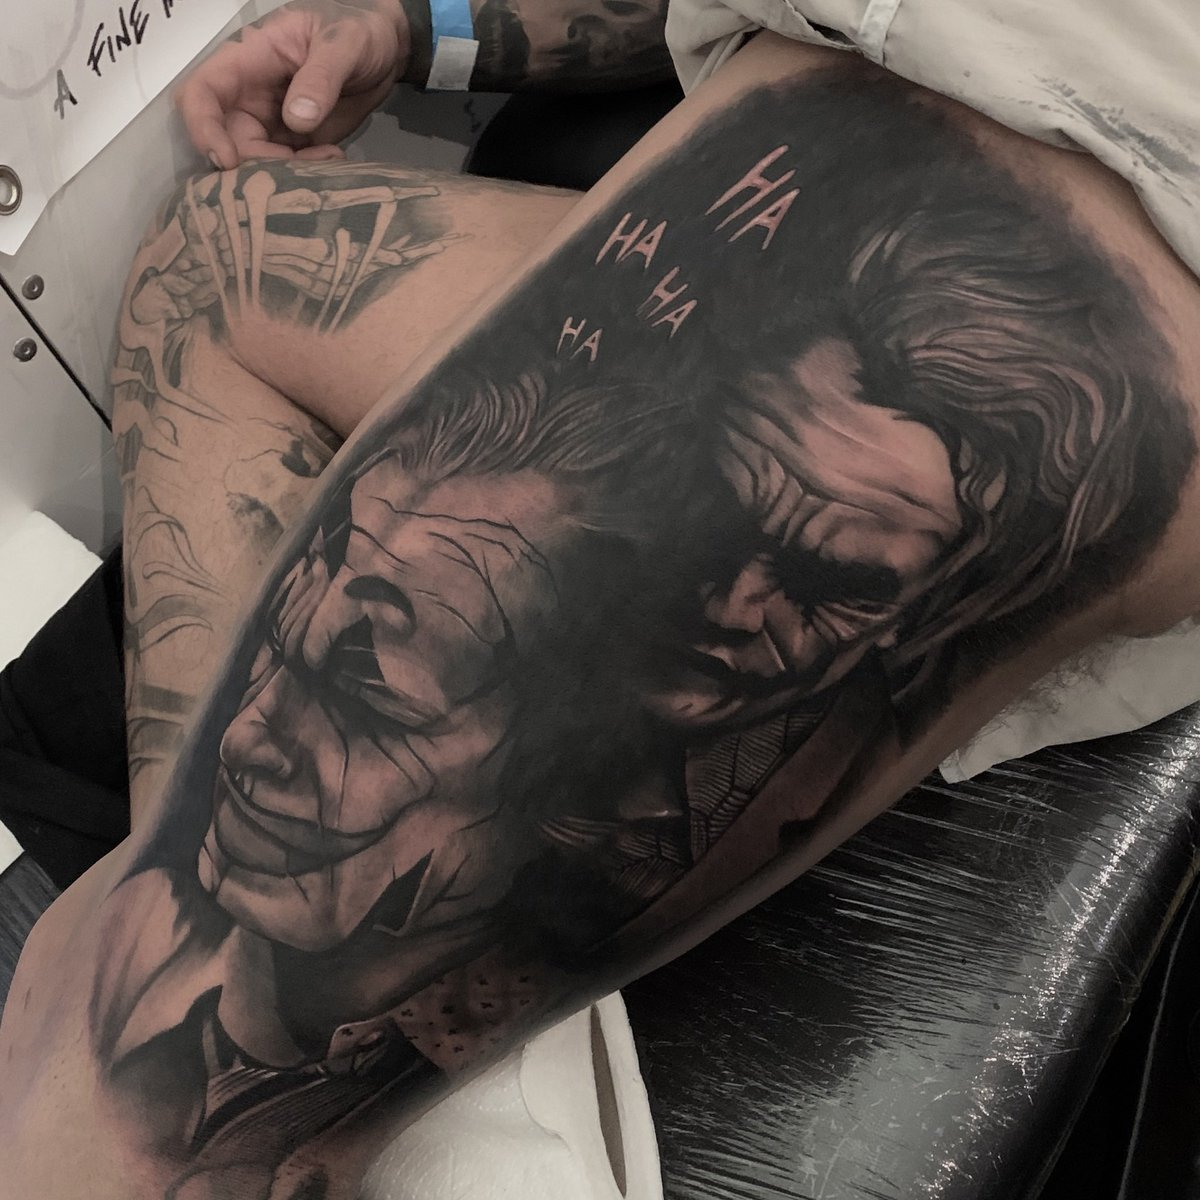 From 2019 #tattoo #jokertattoo #batman #dccomics #tattooartist #blackandgreyrealism #blackandgreytattoo #realism #art